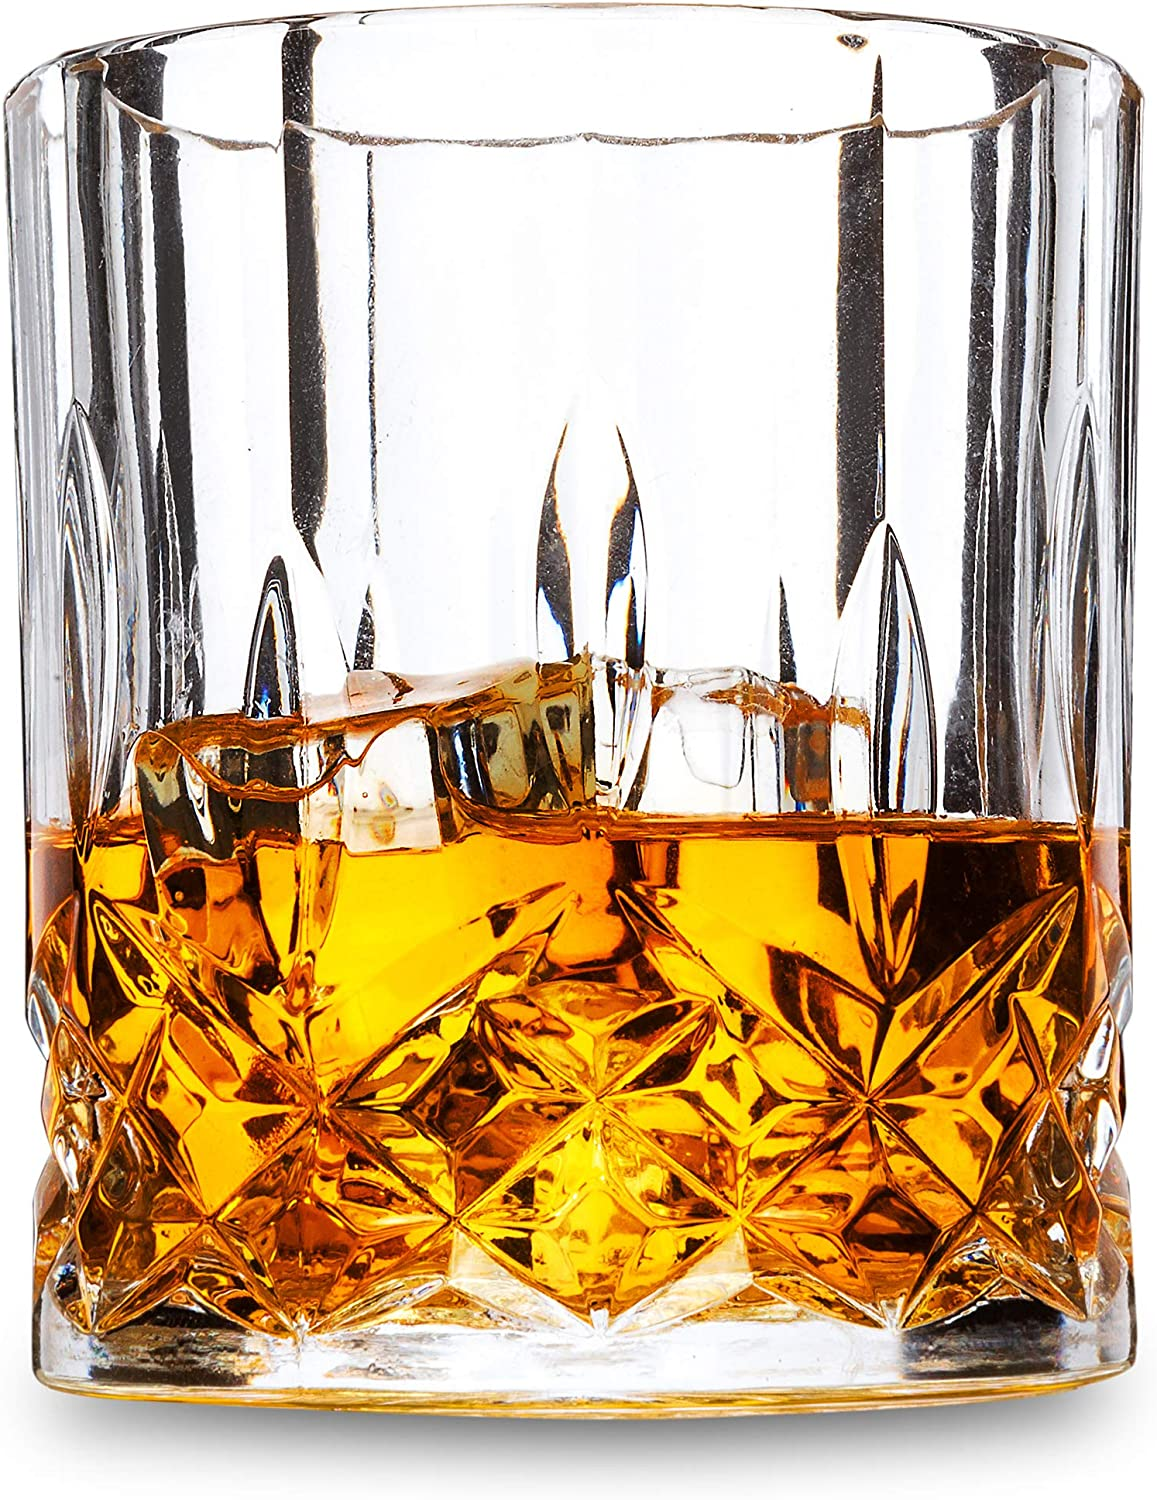 300 ml Non-Lead Crystal Tumblers for Scotch Spirits Cognac and Bourbon Drinking LANFULA Whisky Glass Set of 4 Cocktail